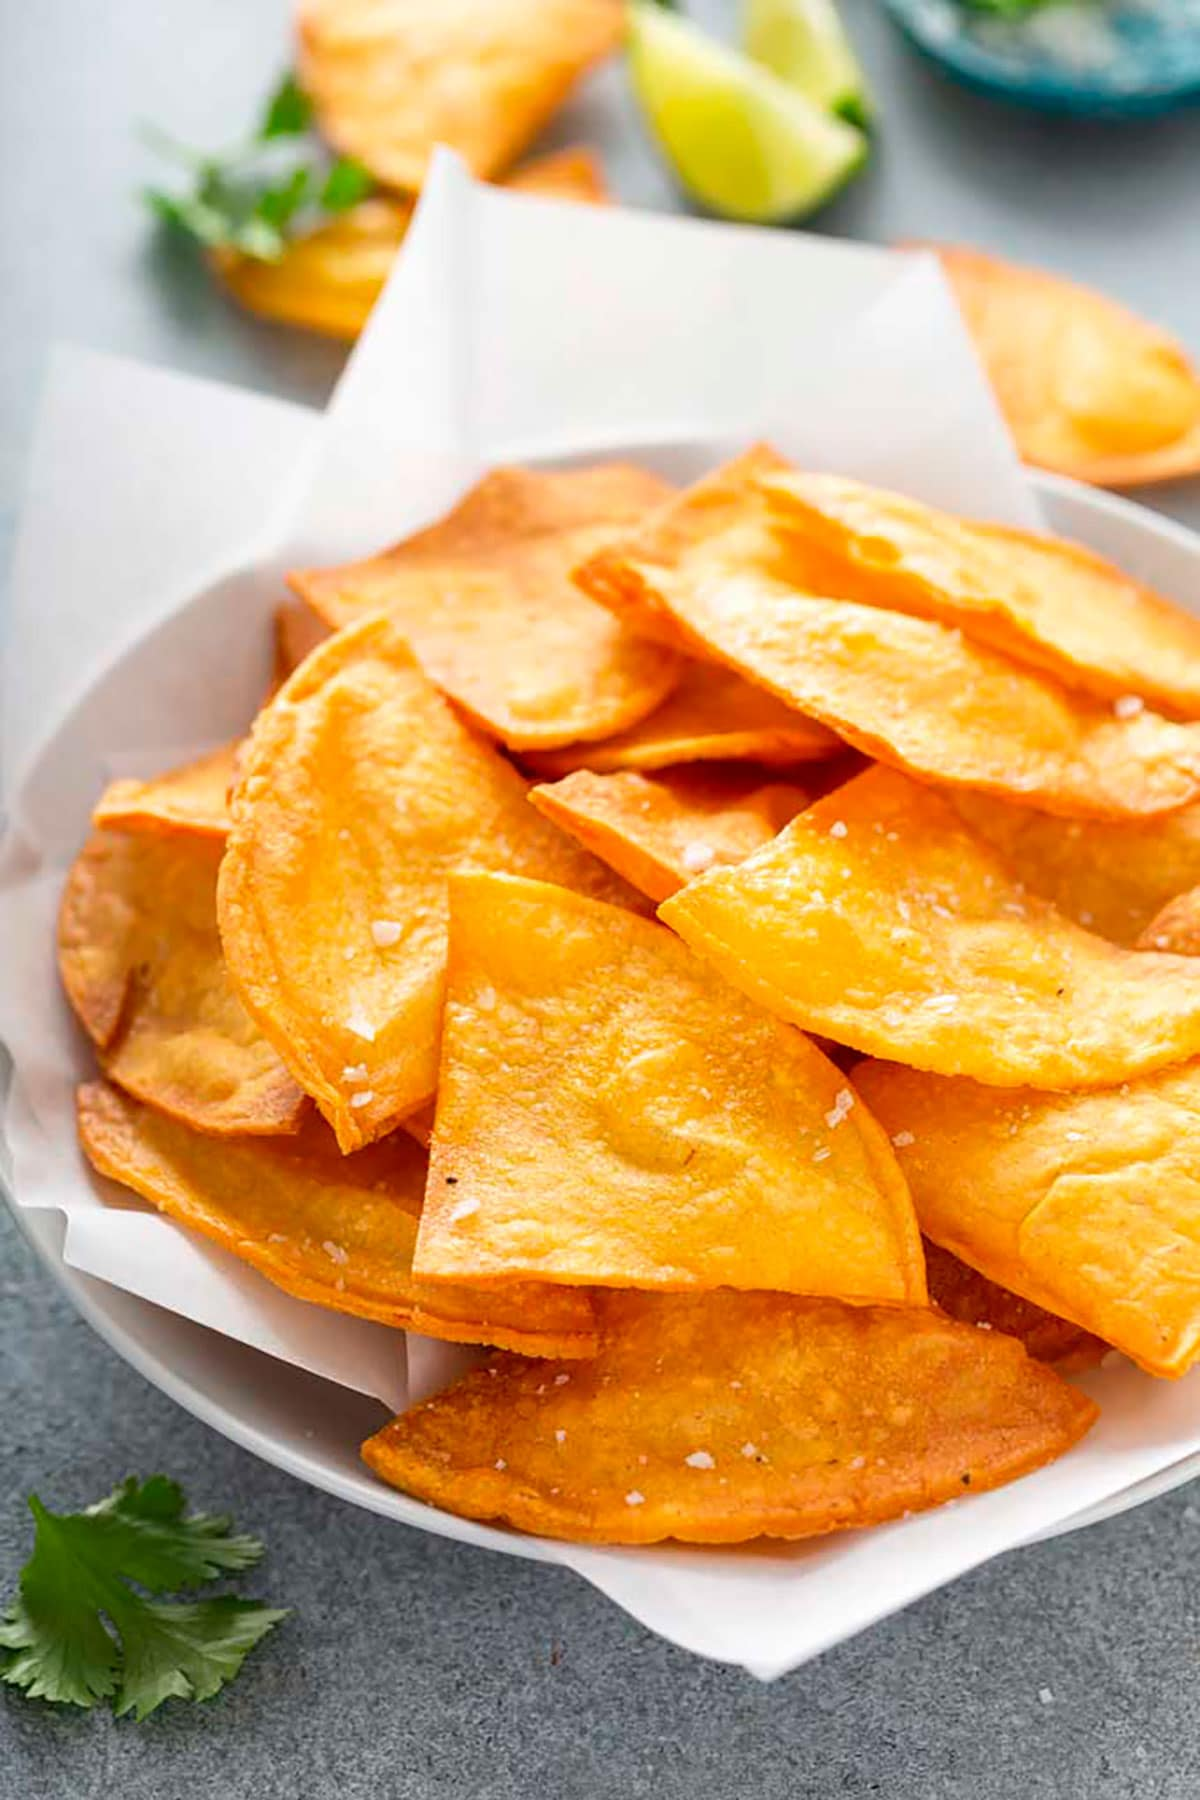 Crispy tortilla chips in a white bowl.